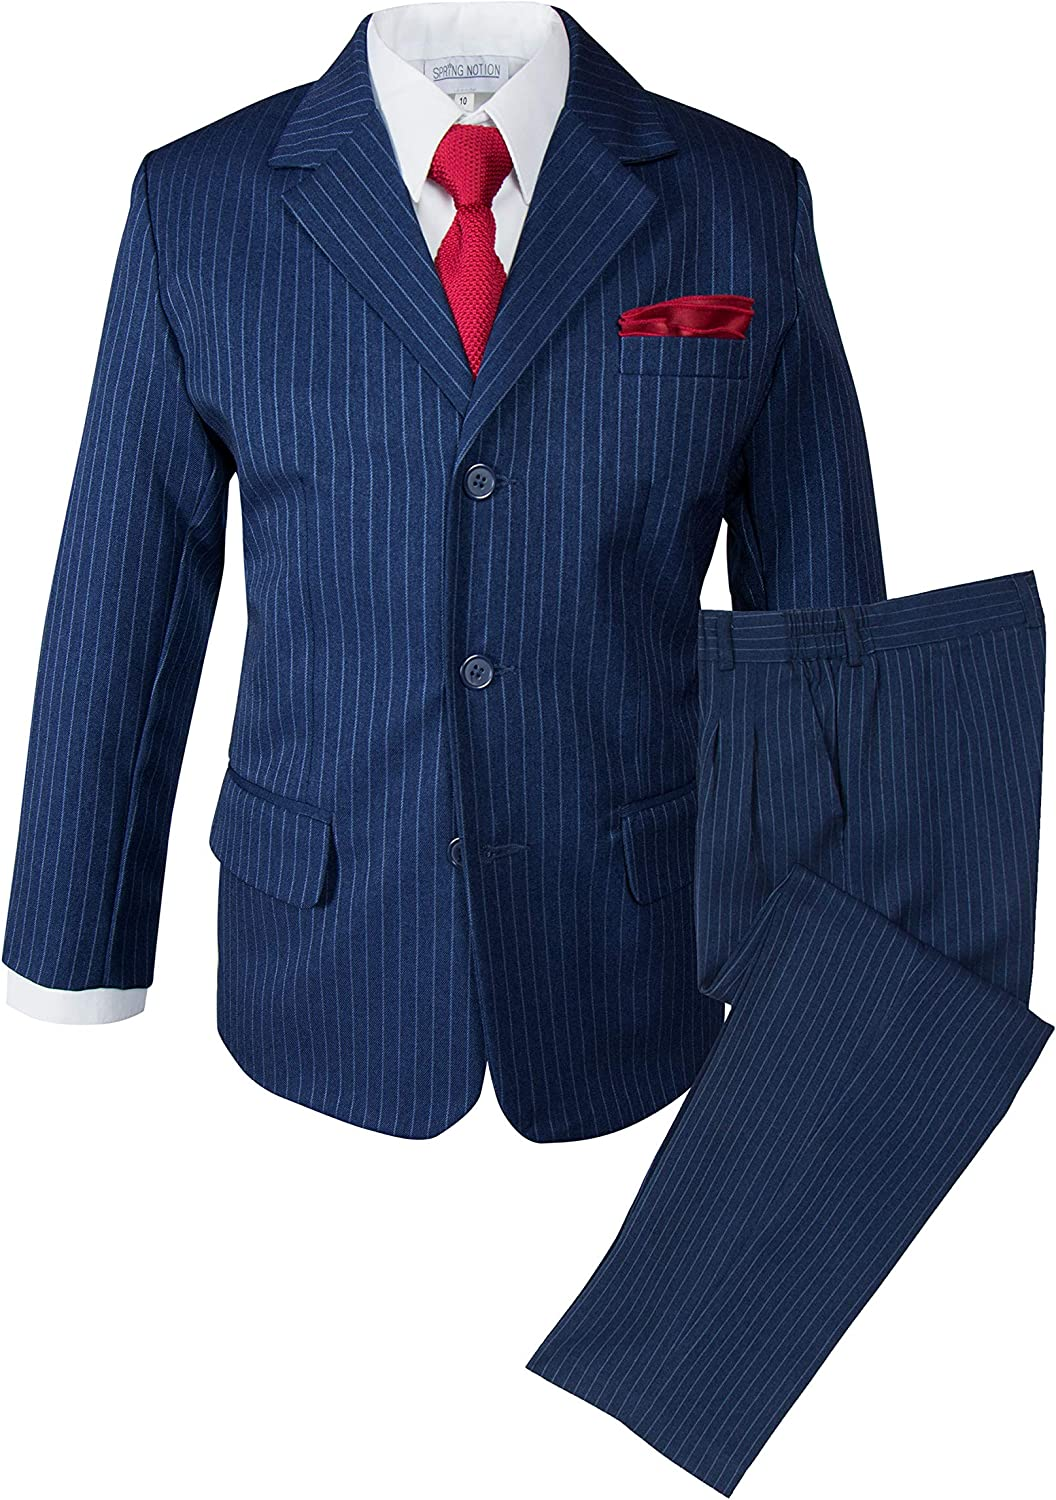 Spring Notion Boys' Pinstripe Blue Suit with Knit Tie and Satin Handkerchief